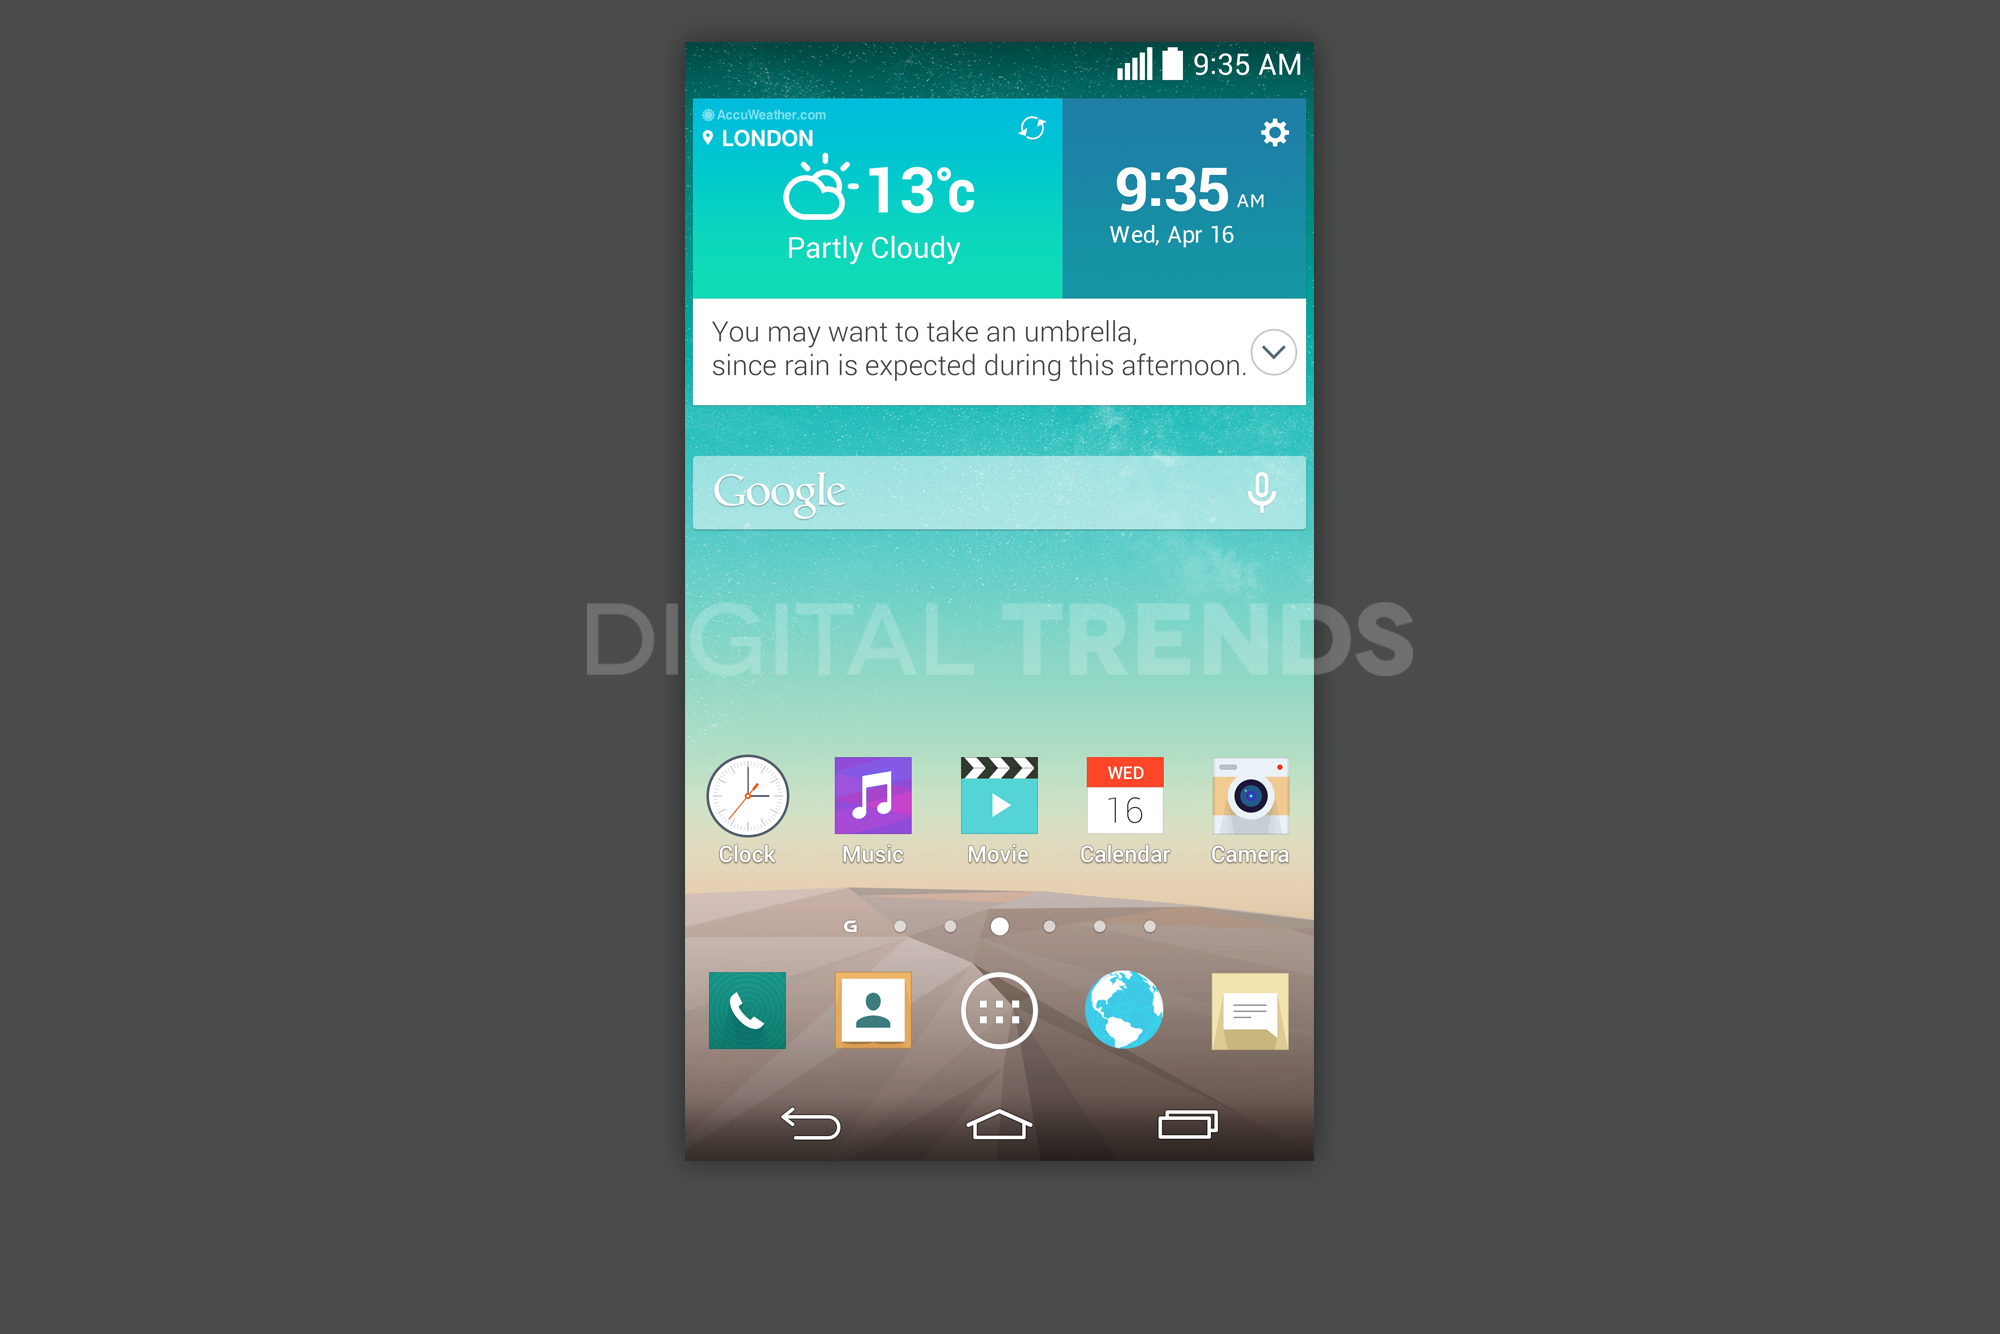 lg-g3-android-home-2000x1334